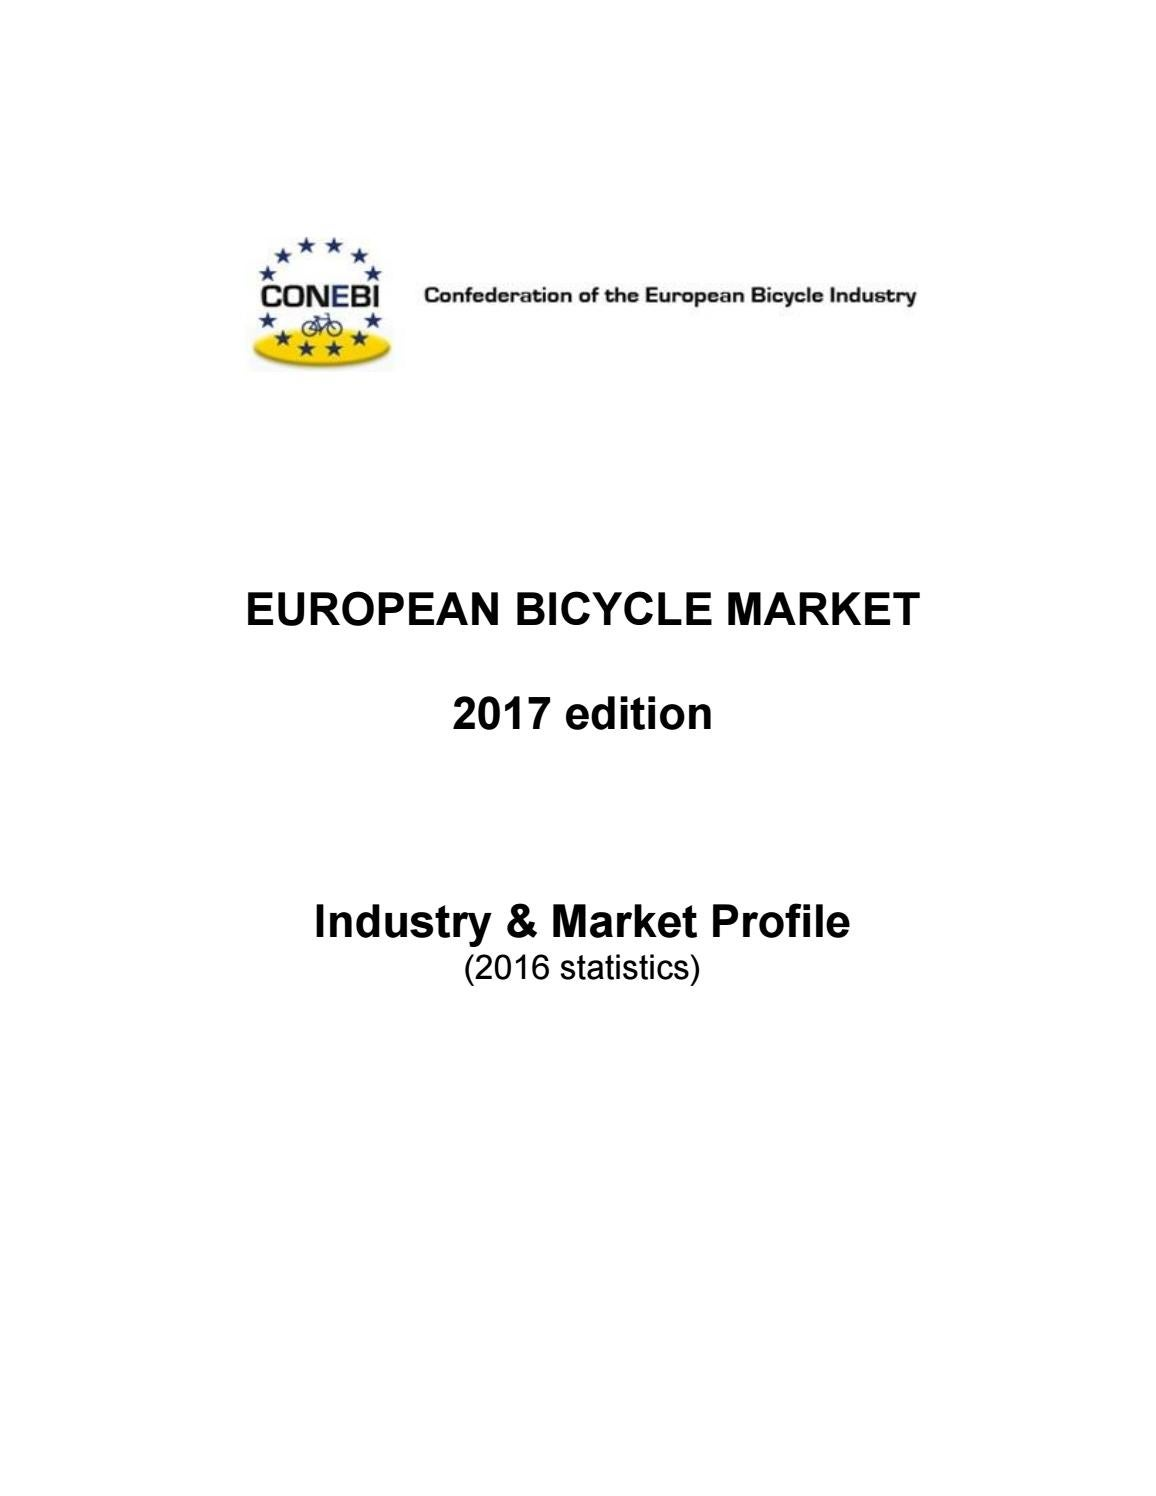 European Bicycle Industry and Market Profile 2017 with 2016